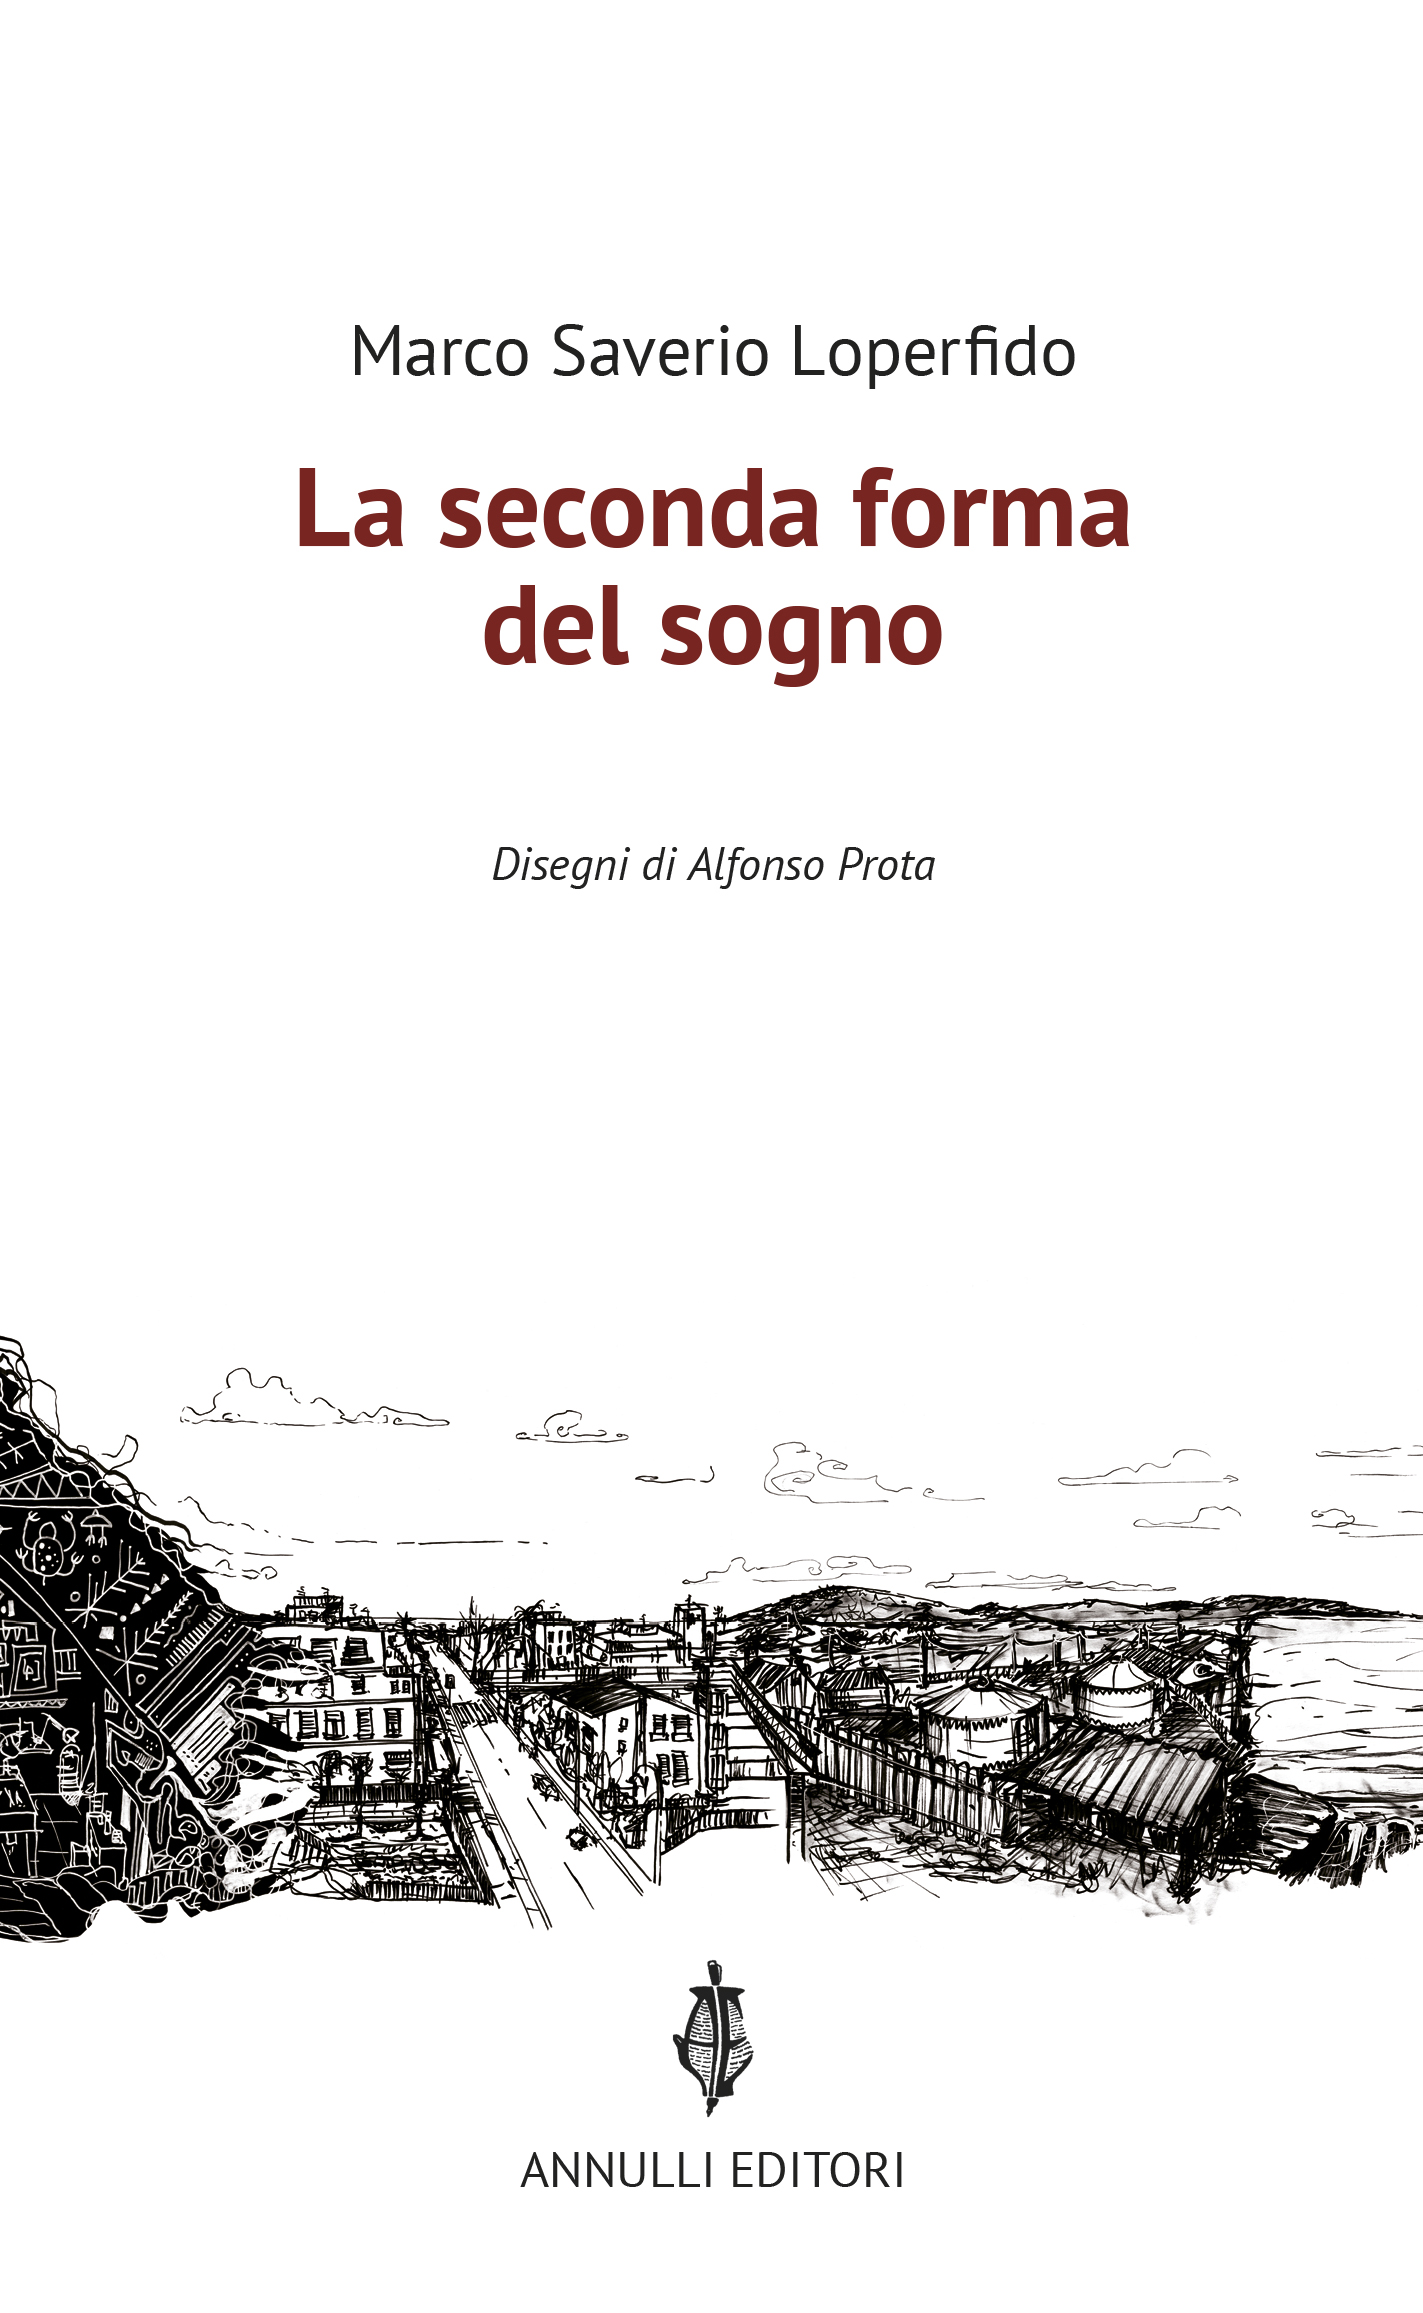 La seconda forma del sogno di Marco Saverio Loperfido 8 - fanzine